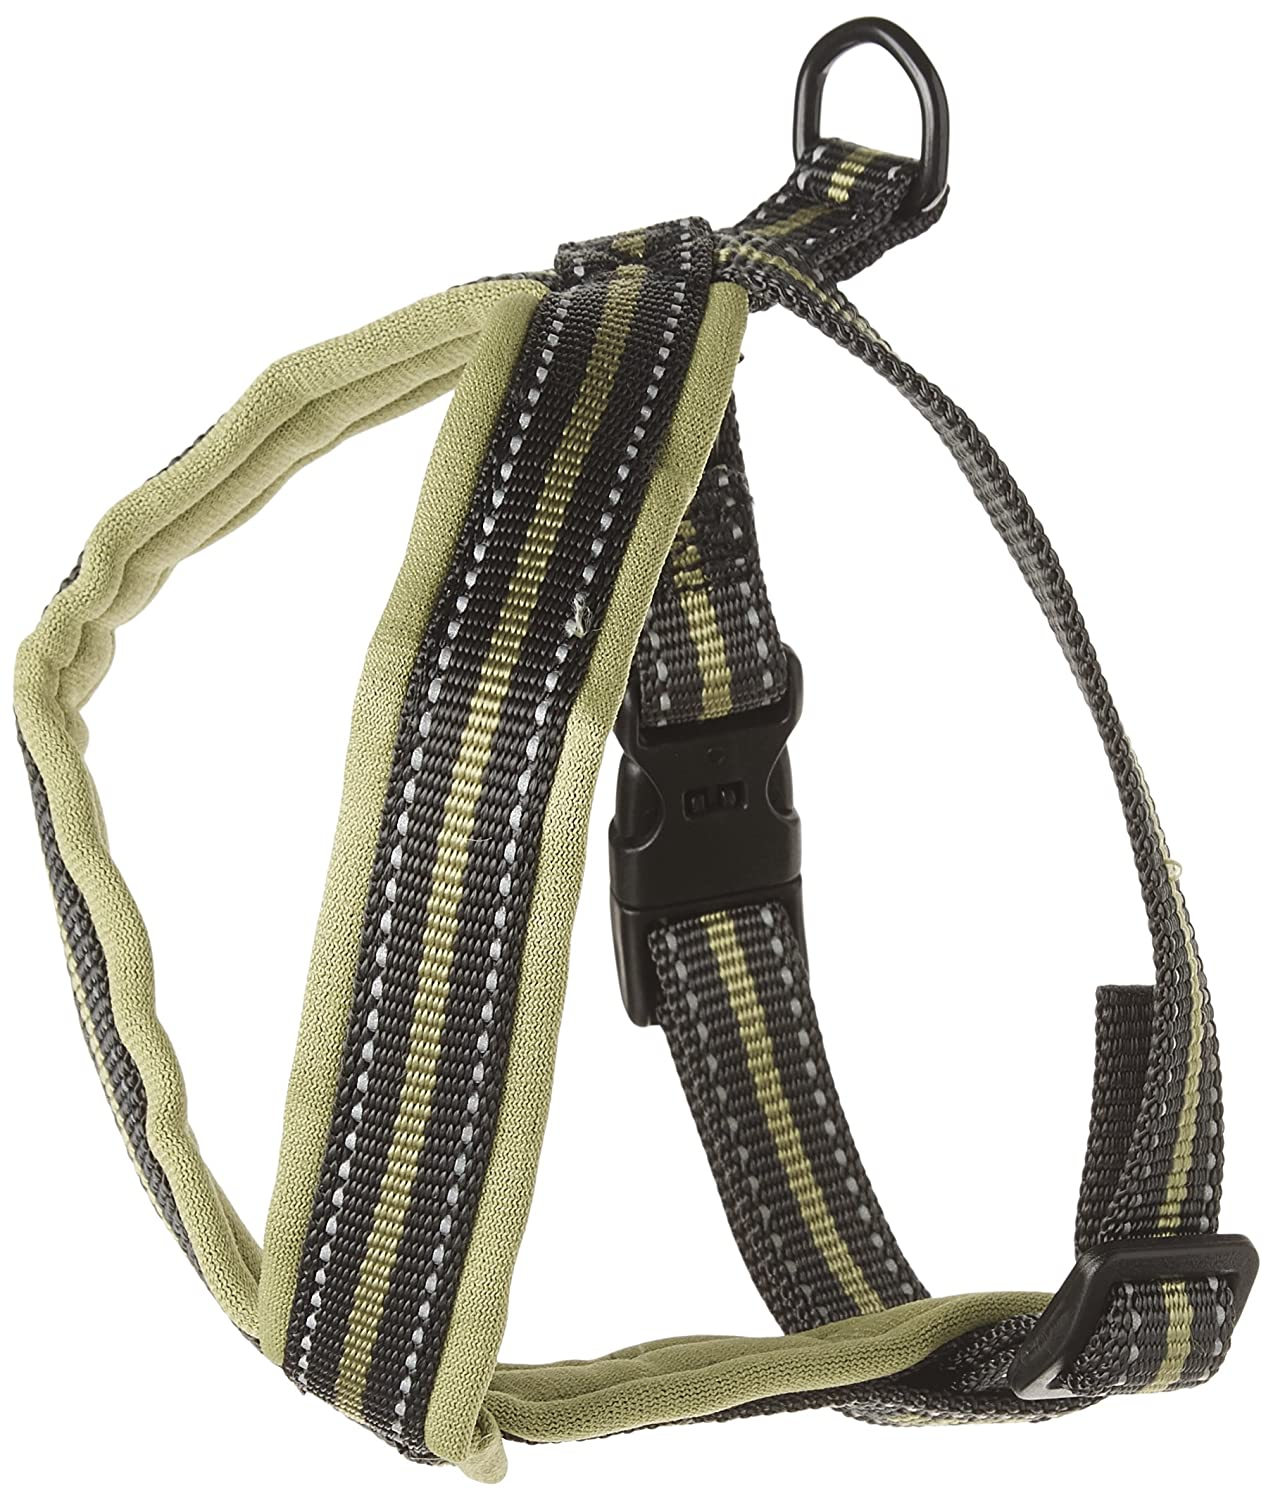 Hurtta Pet Collection Acolchado Y-Harness_P: Amazon.es: Productos ...